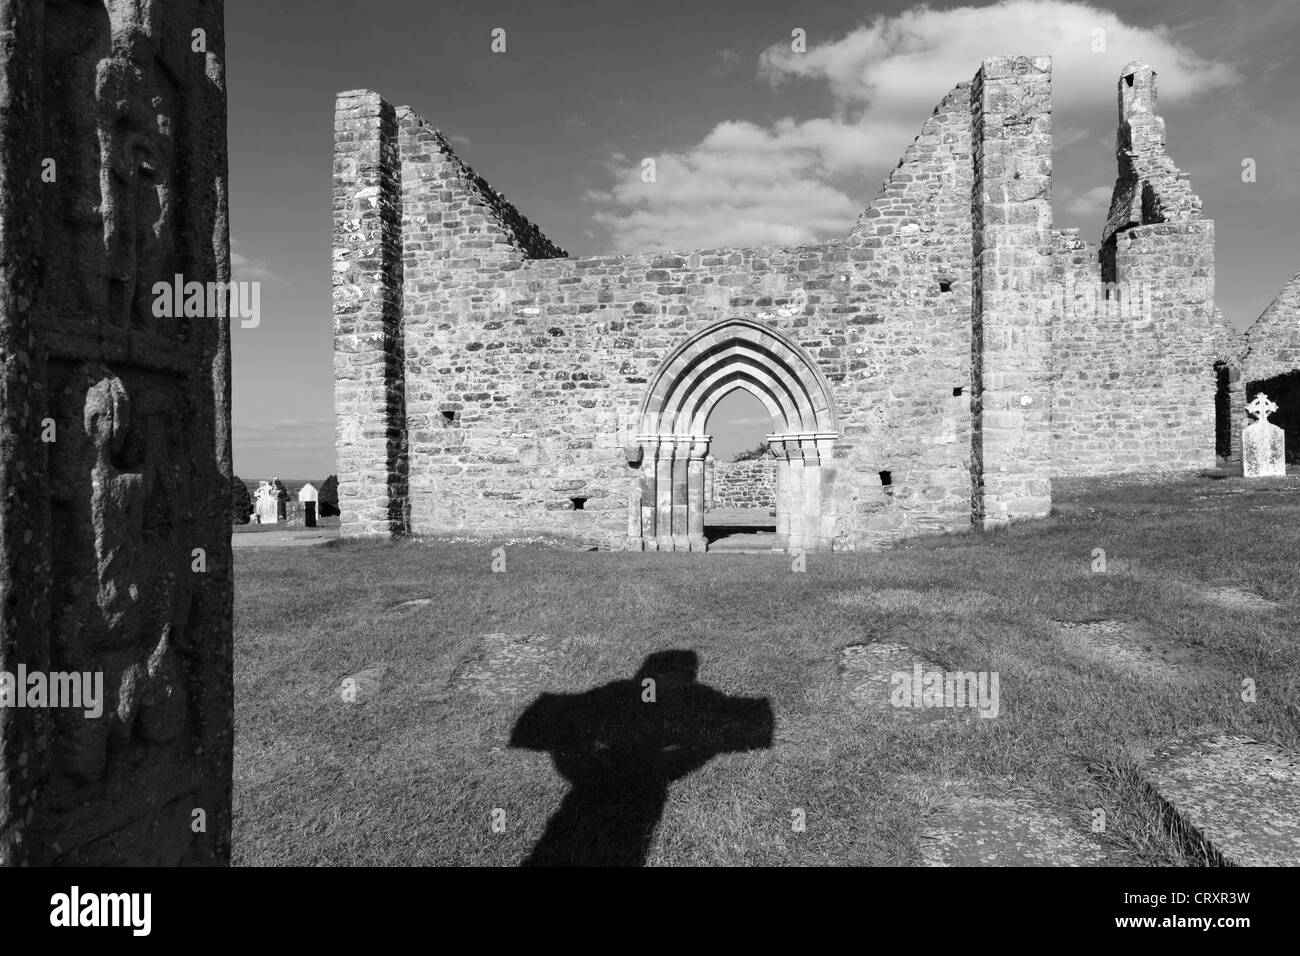 Ireland, Leinster, County Offaly, View of Clonmacnoise - Stock Image